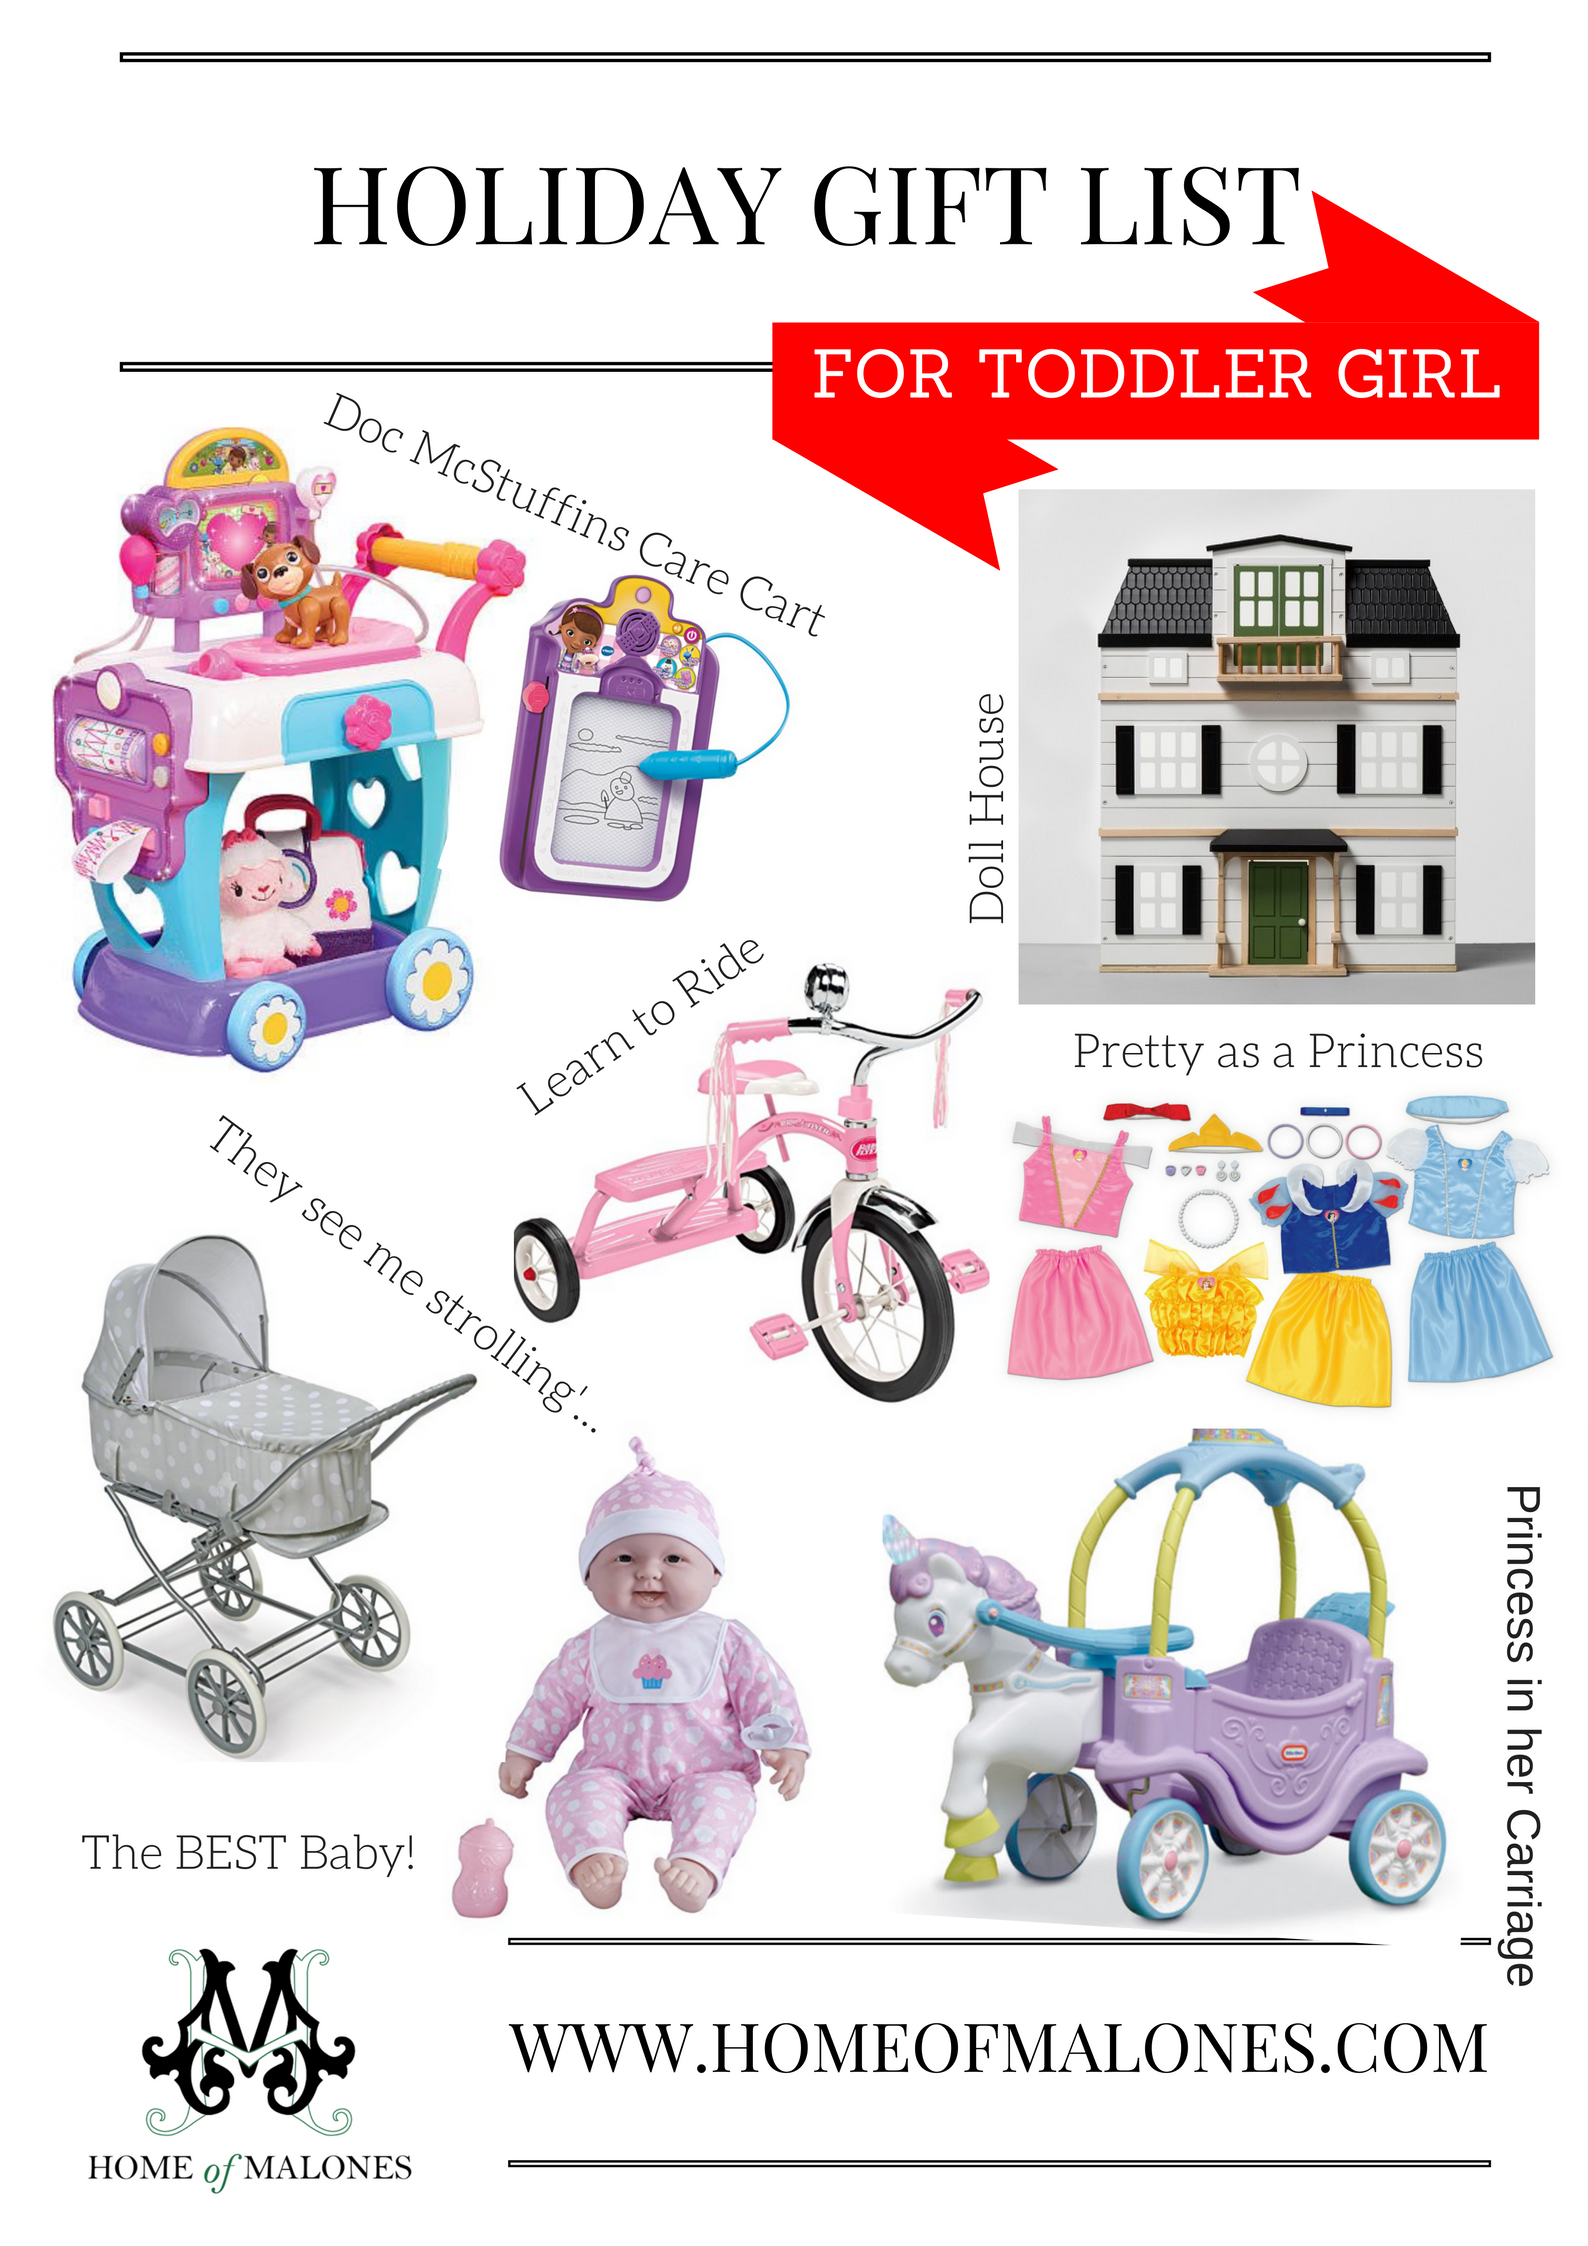 Holiday Gift List 2017 | For the Toddler Boy and Girl - Home of ...